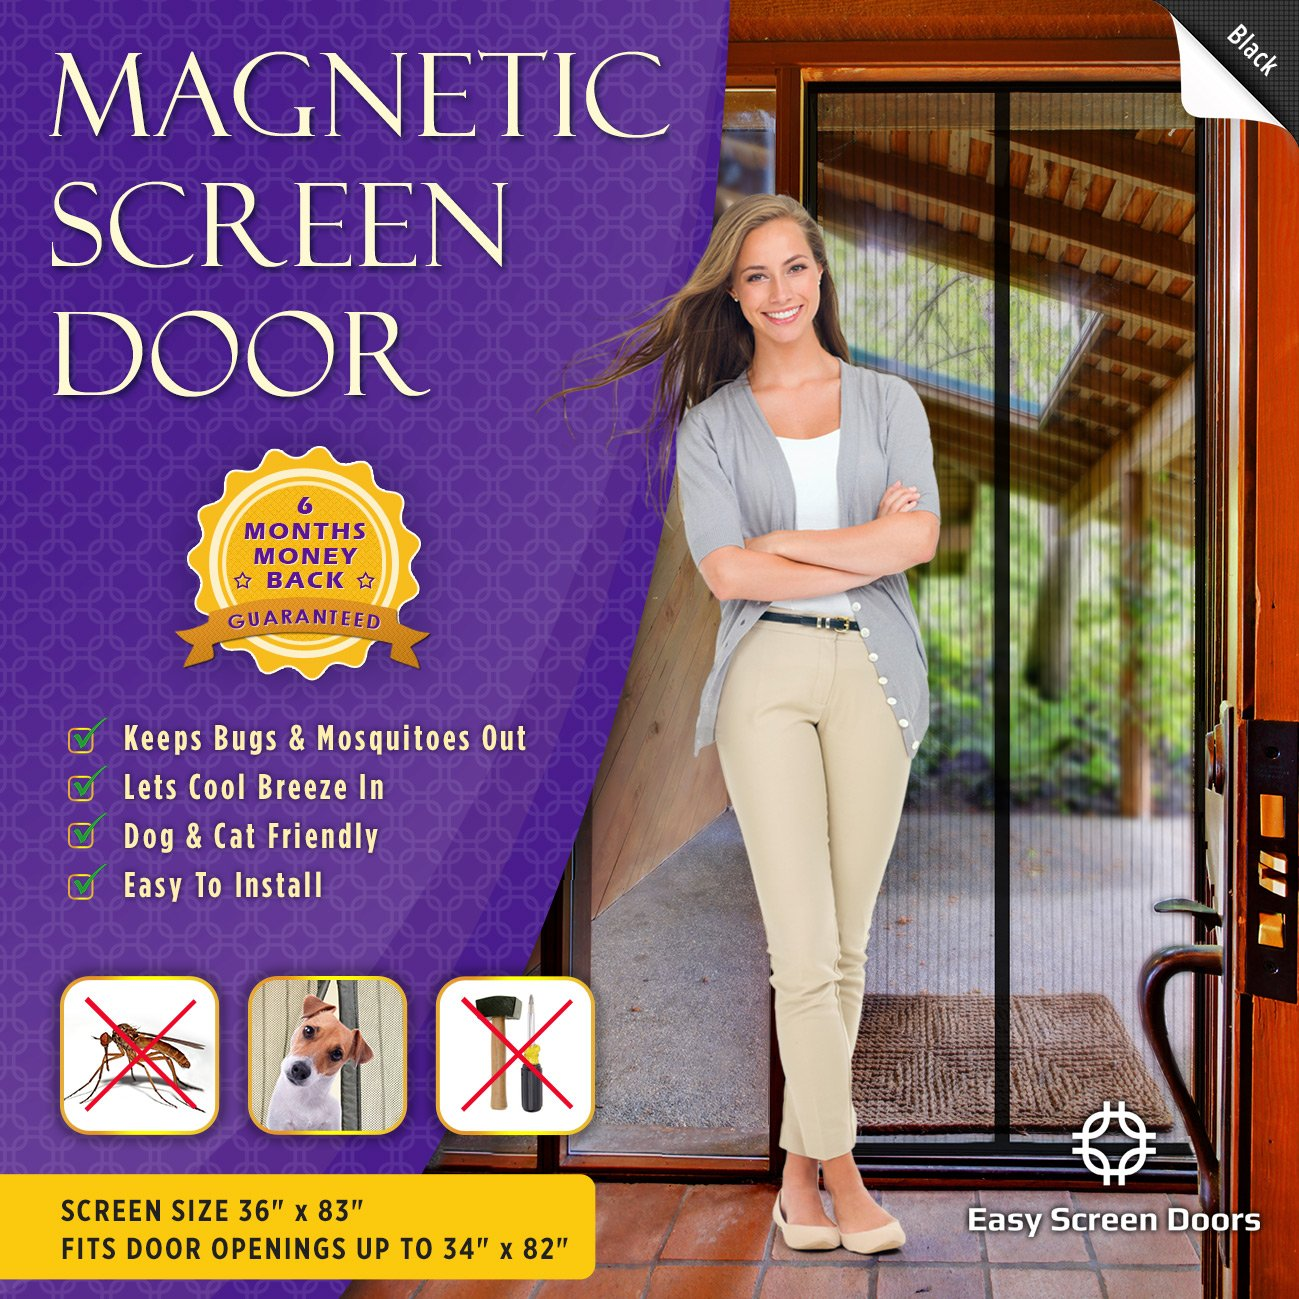 Magnetic Screen Door, Mesh Curtain   Keeps Mosquitoes Out   Full Frame  Velcro   Toddler And Dog Friendly   Fits Doors Up To 34   Inch By 82   Inch  MAX ...